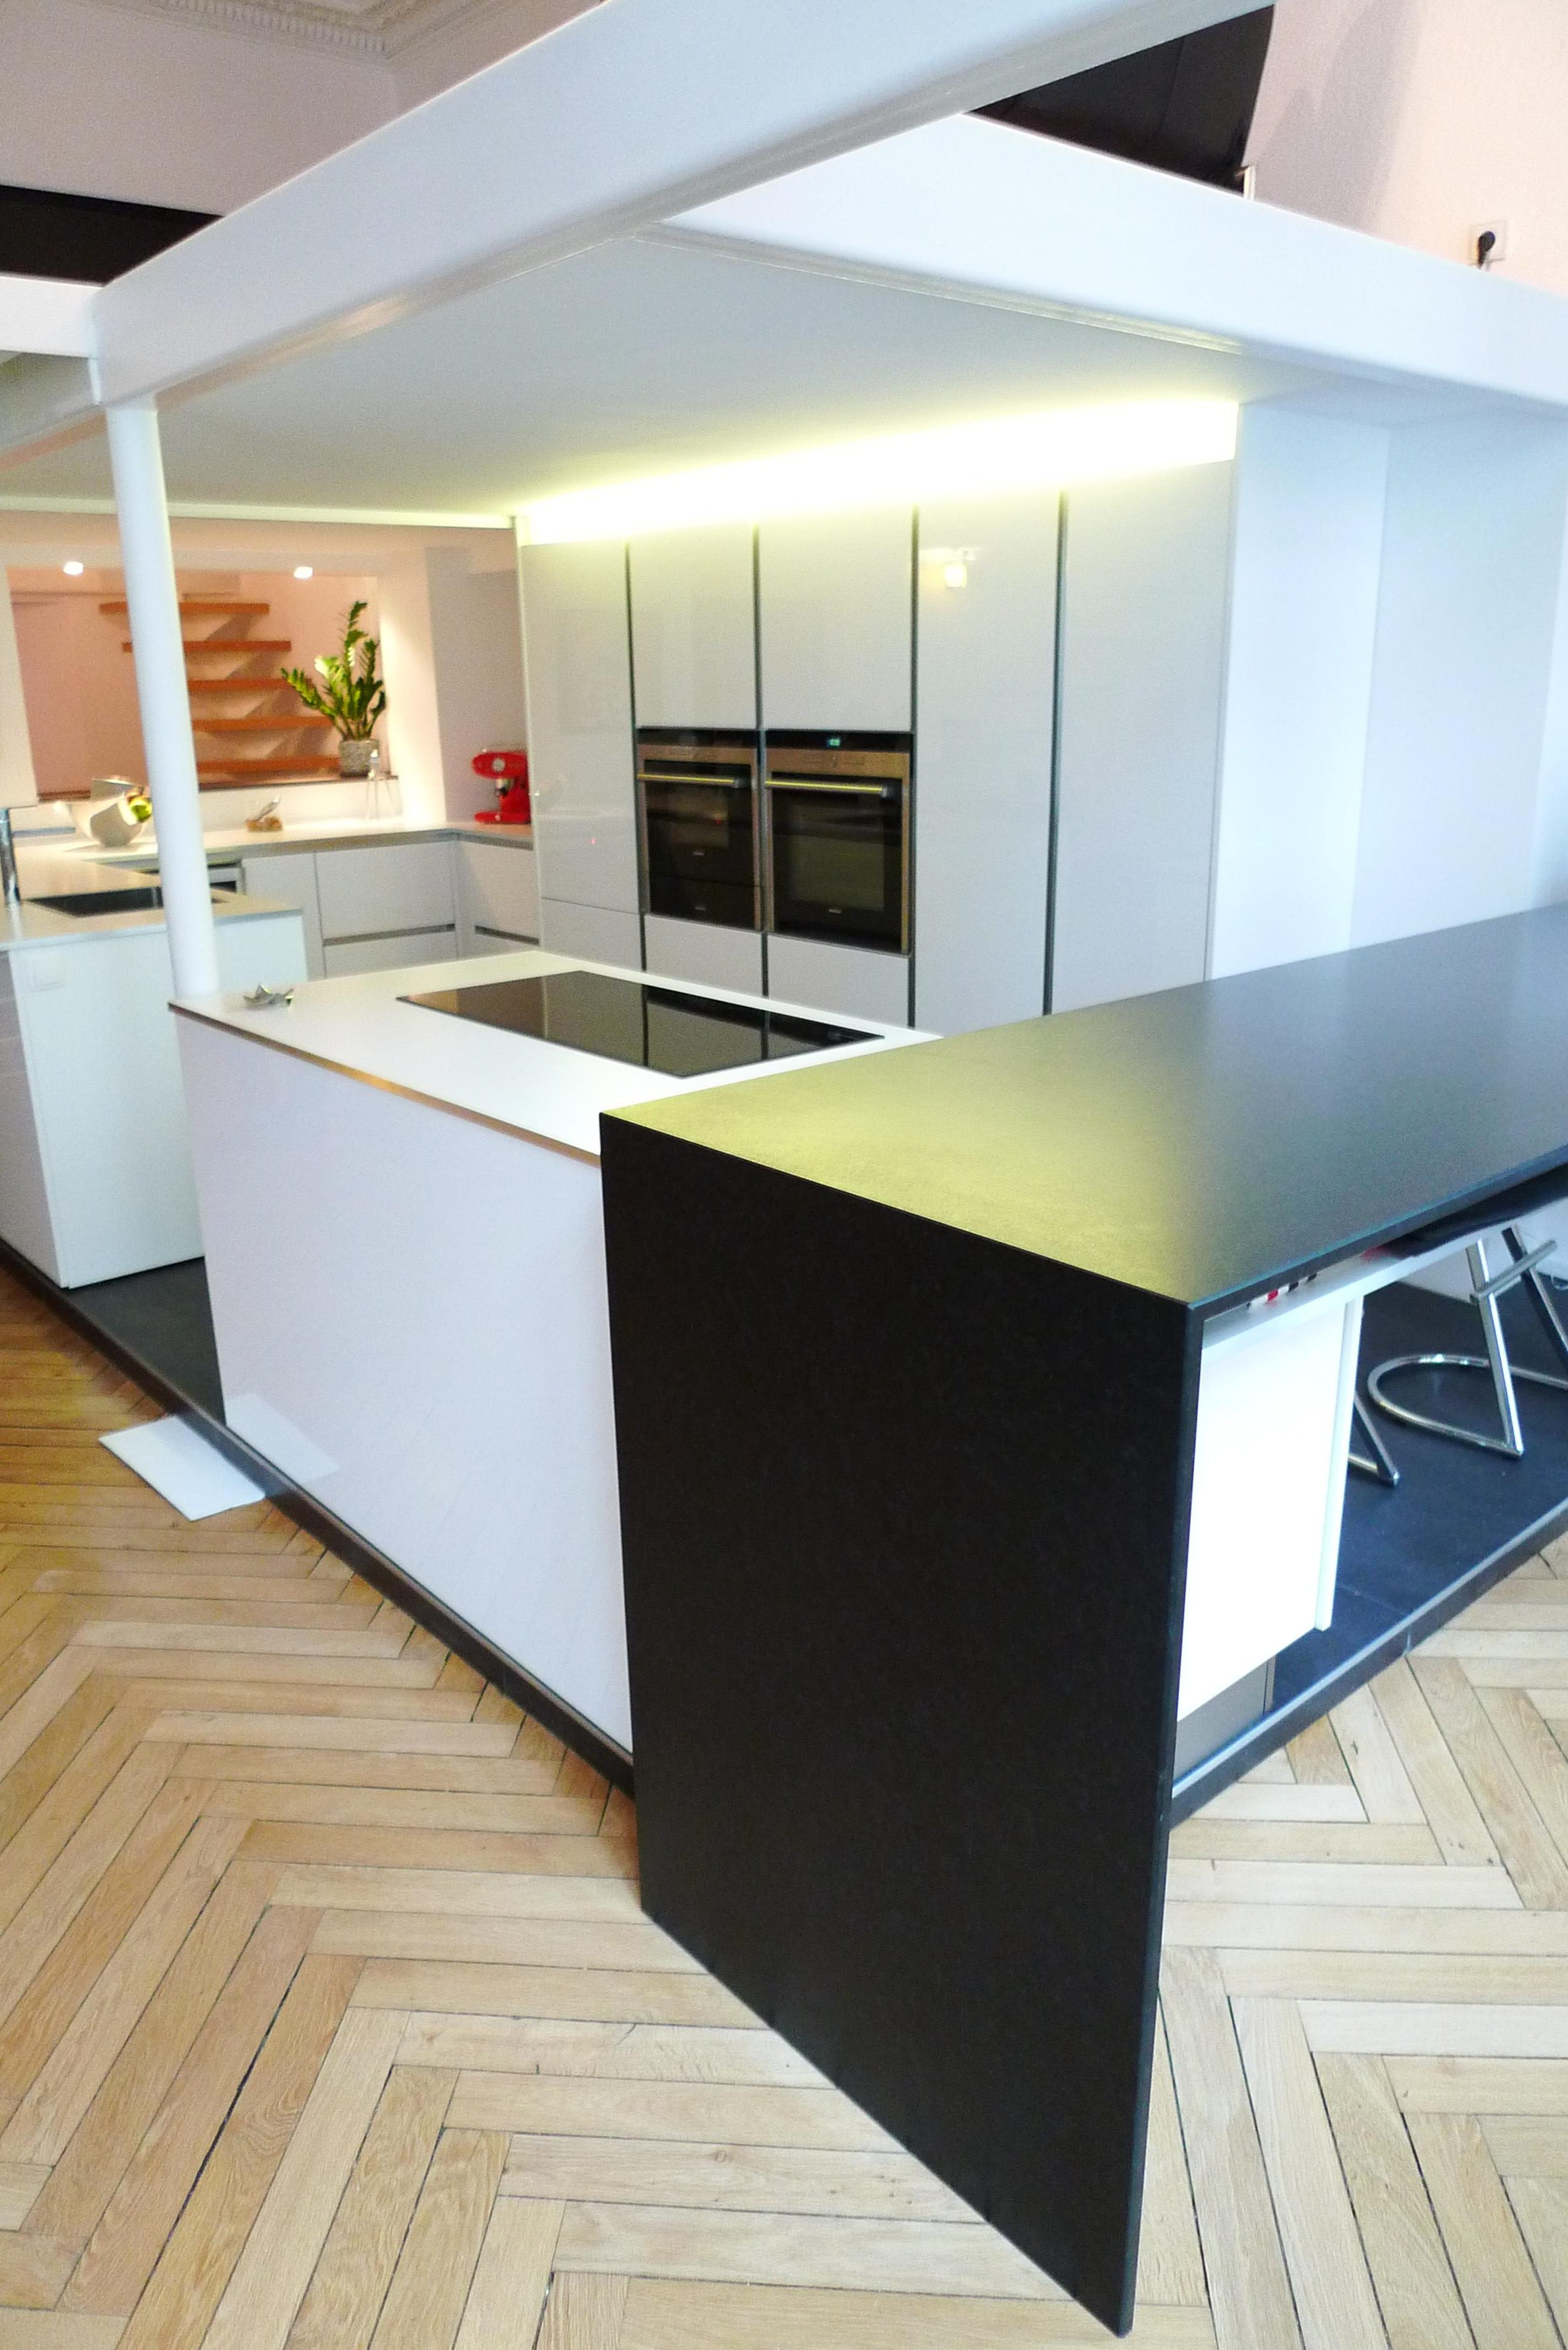 rbconcept-appartement-bourgeois-cuisine